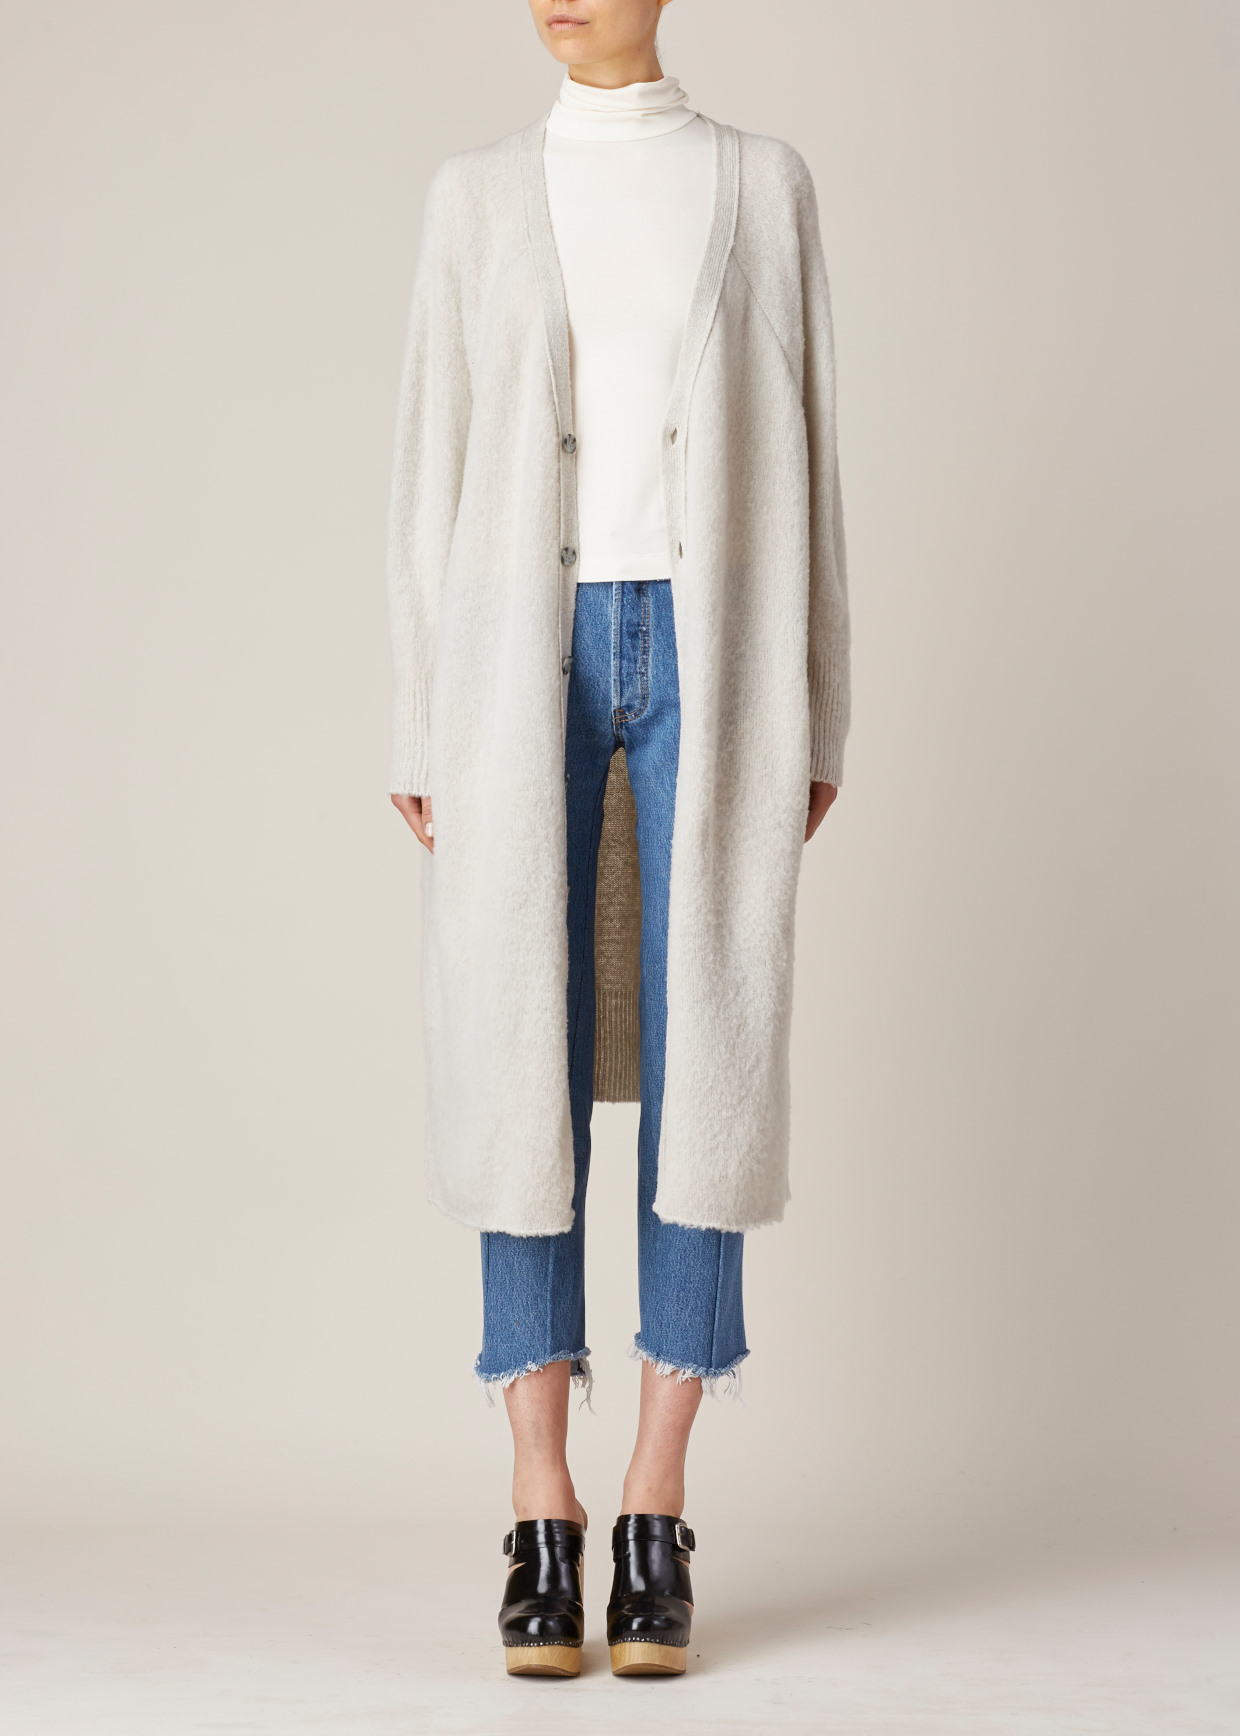 Y's yohji yamamoto Ivory Super Long Cardigan in White | Lyst